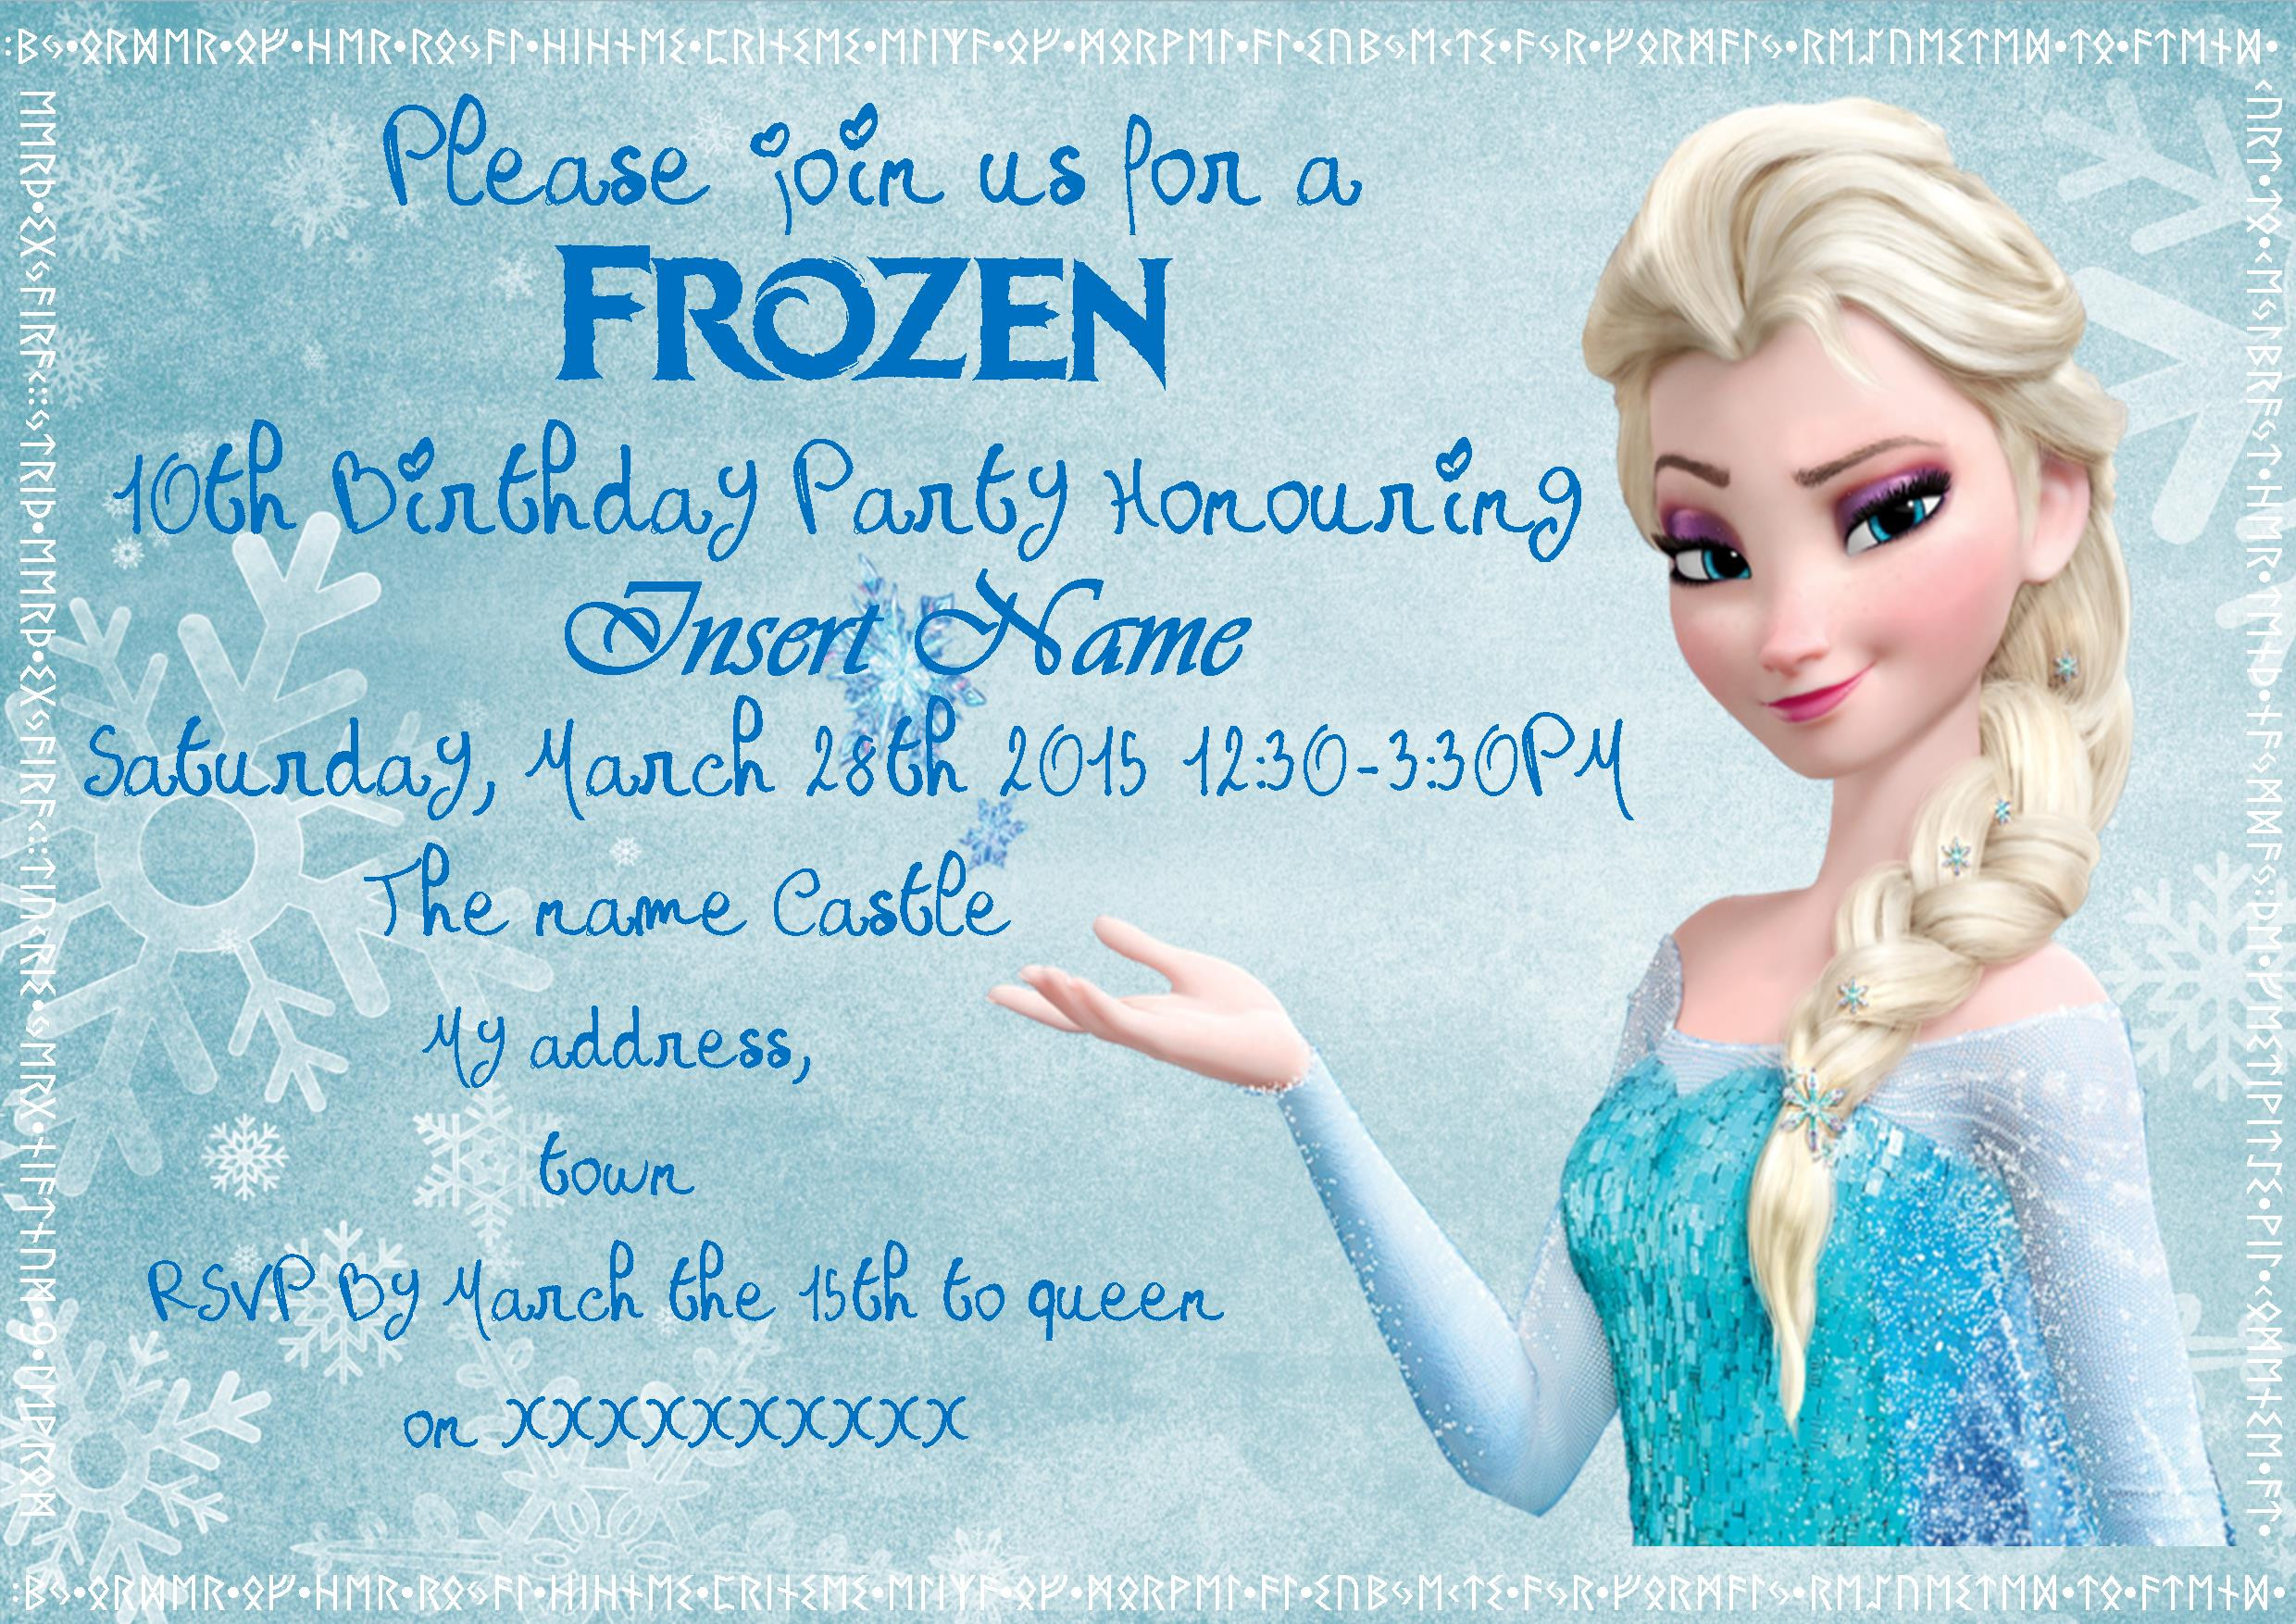 Frozen Invitations Printable Frozen Invite Free Printable – Mothering the Spectrum